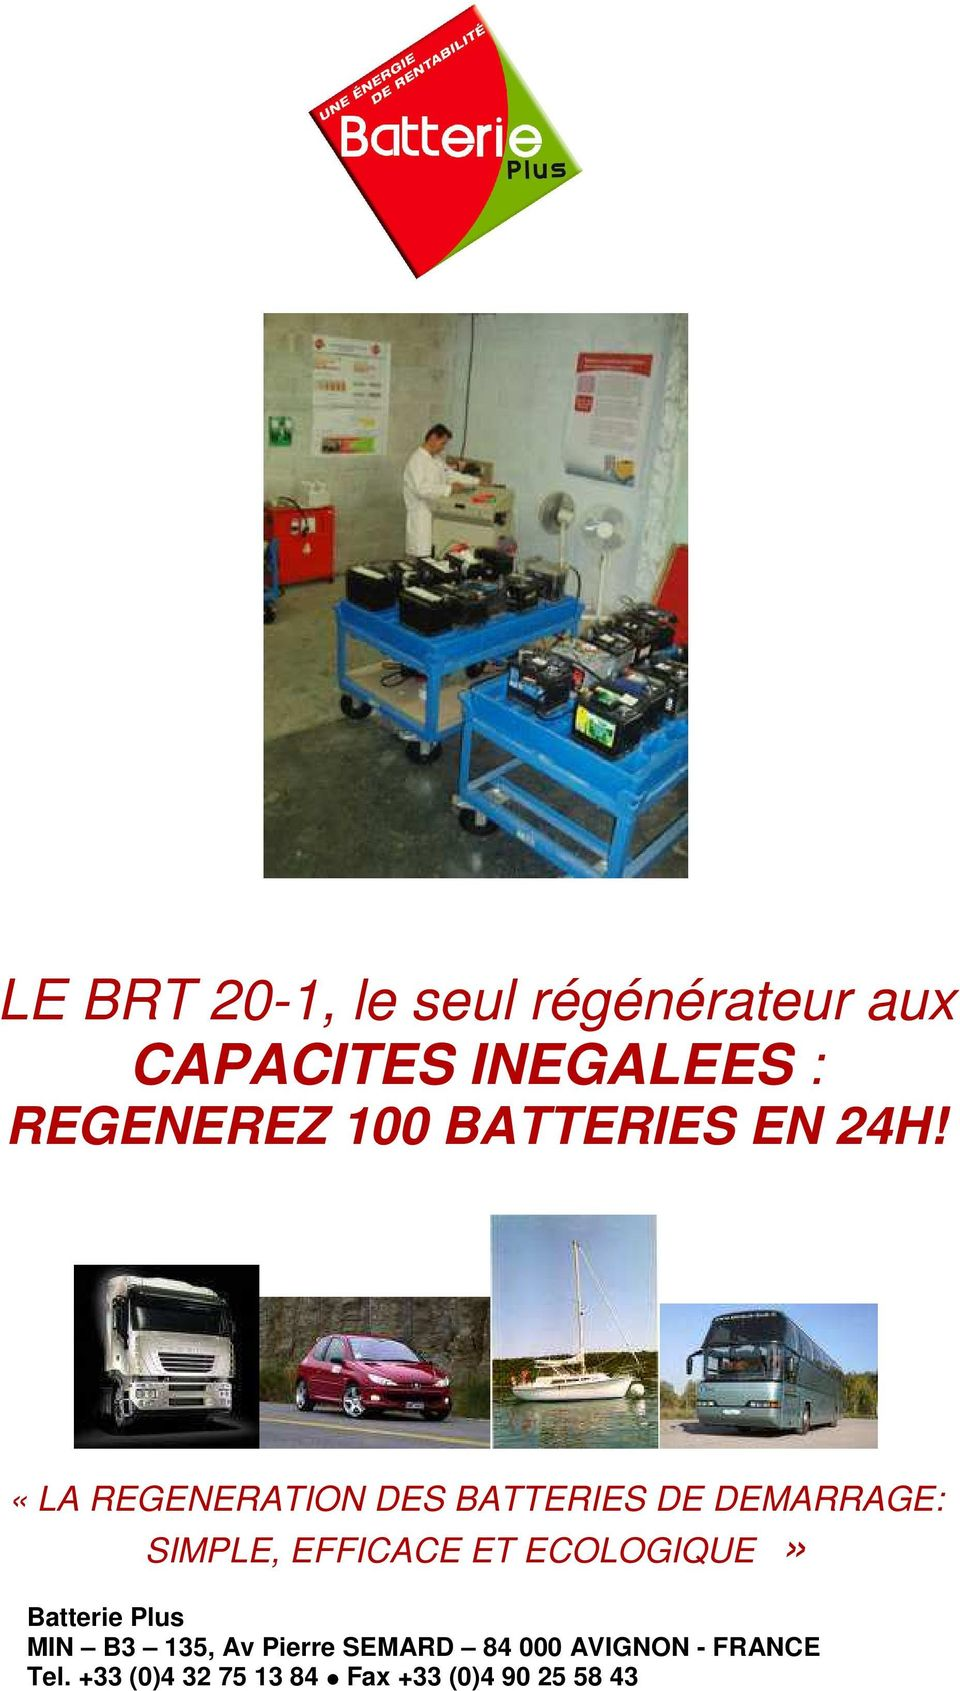 «LA REGENERATION DES BATTERIES DE DEMARRAGE: SIMPLE, EFFICACE ET